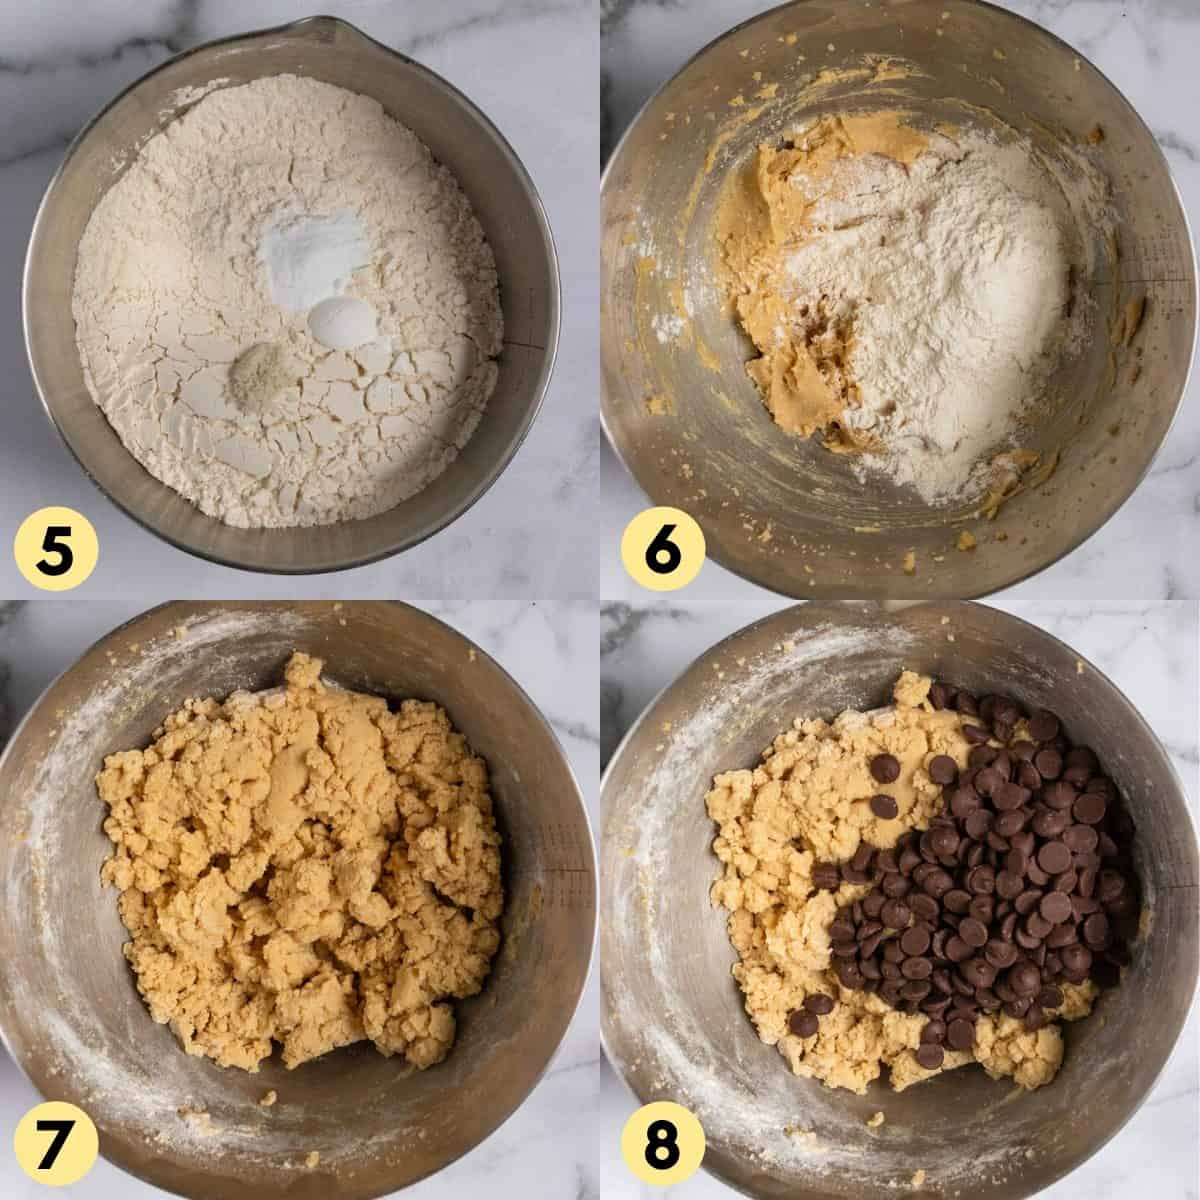 Dry ingredients added into wet ingredients in mixing bowl.